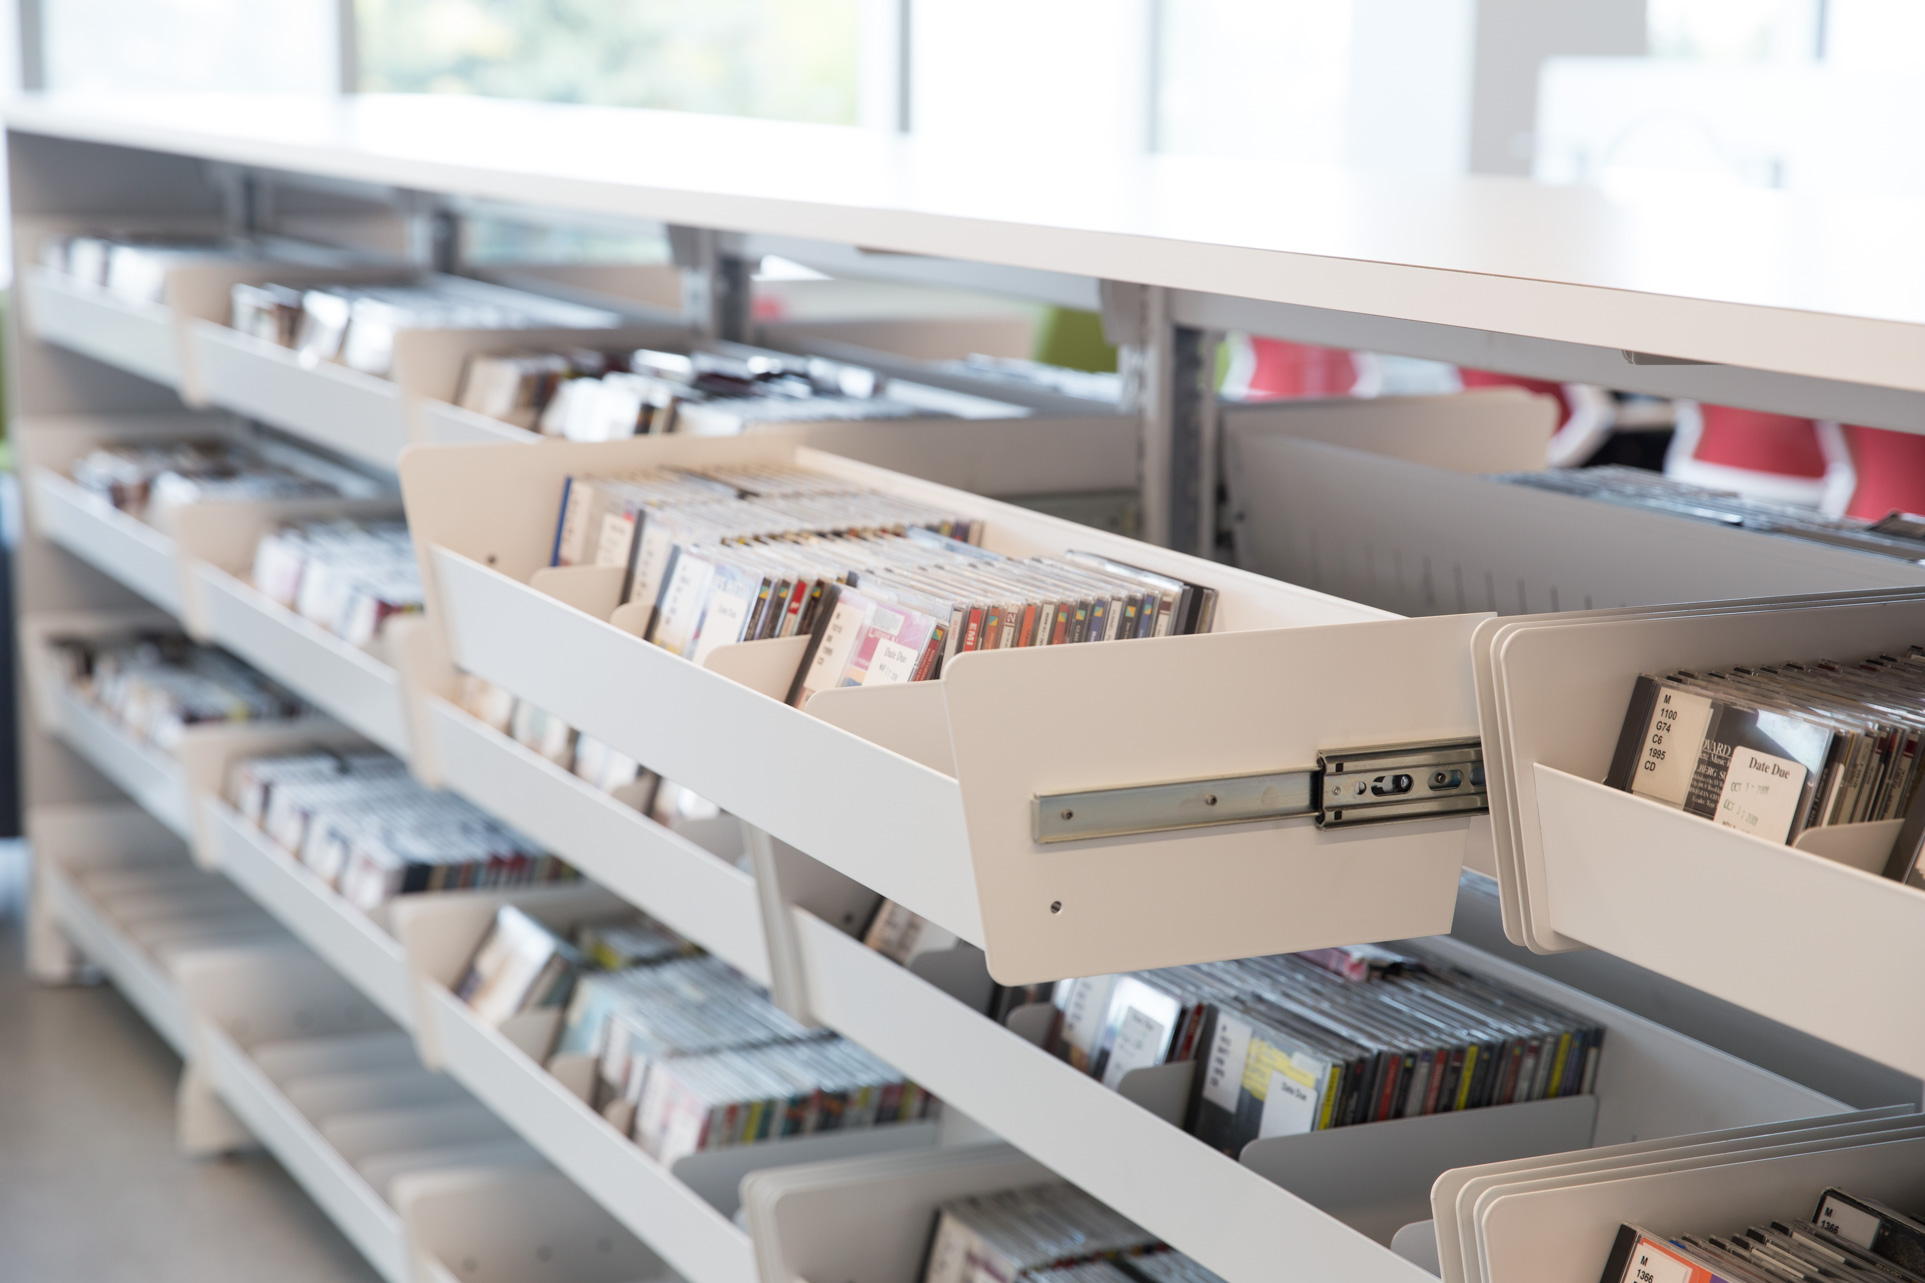 pull-out browsing bins